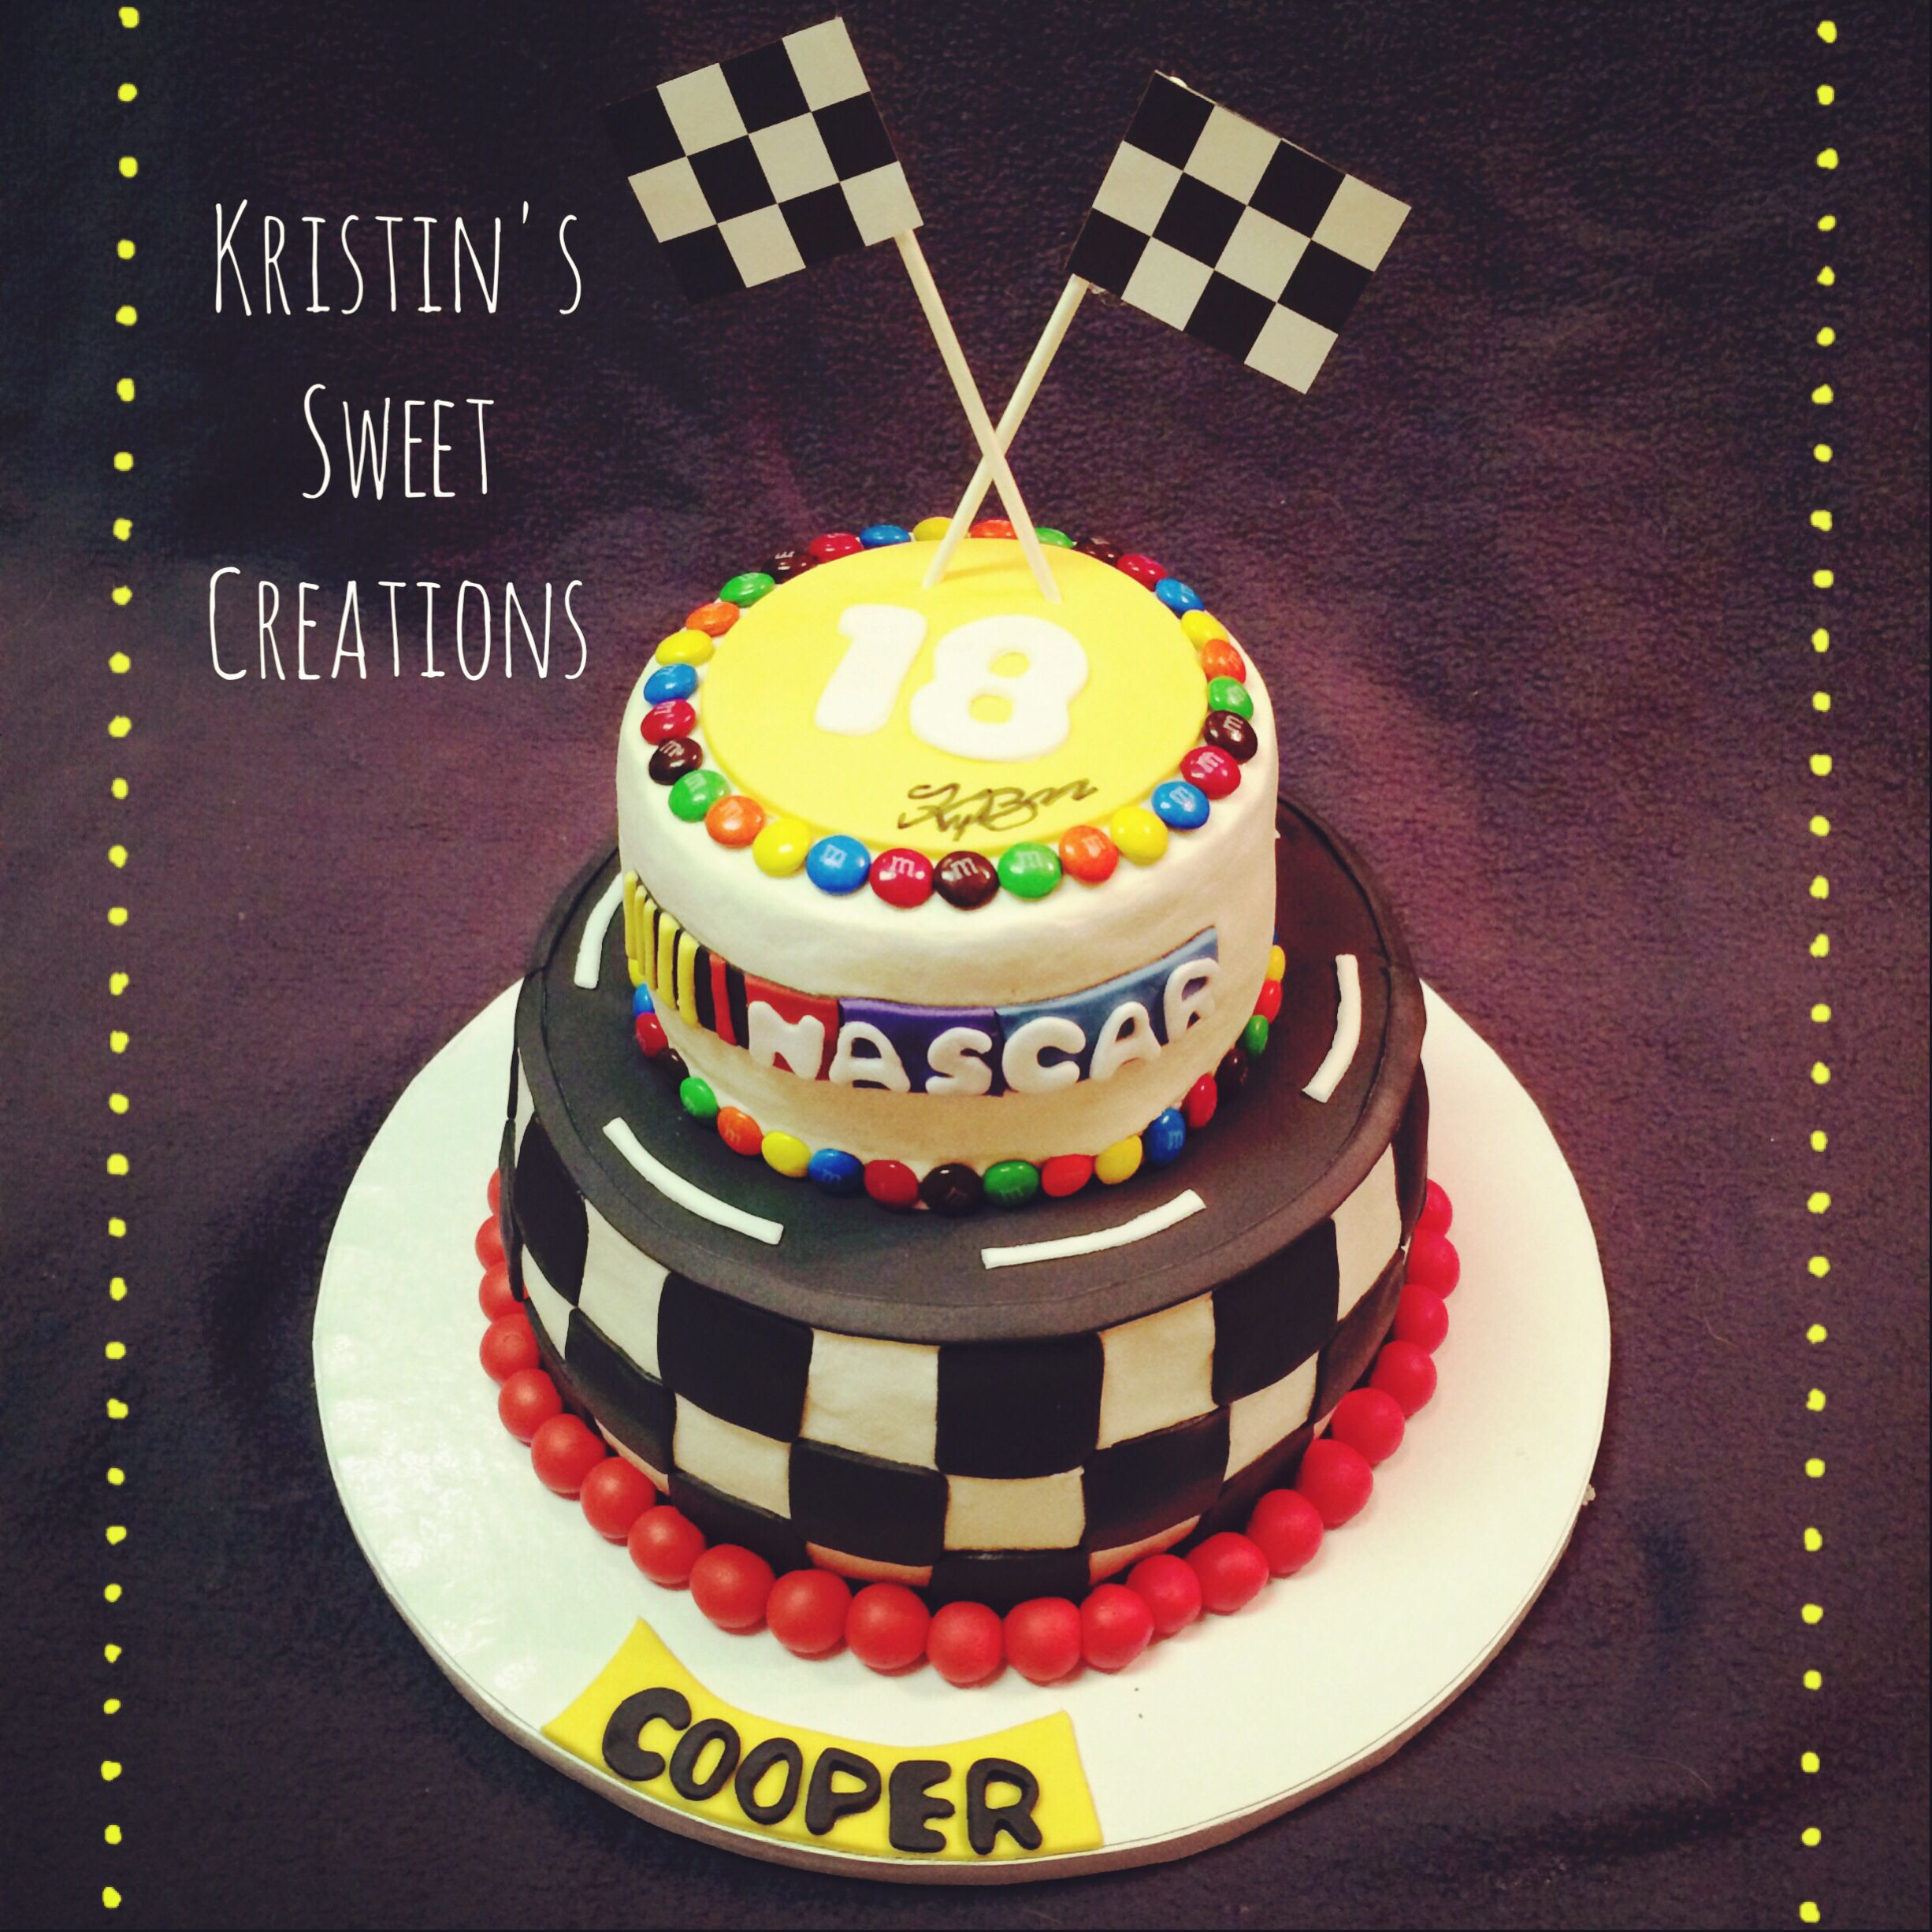 Nascar And Kyle Busch Cake Kristin' Sweet Creations In